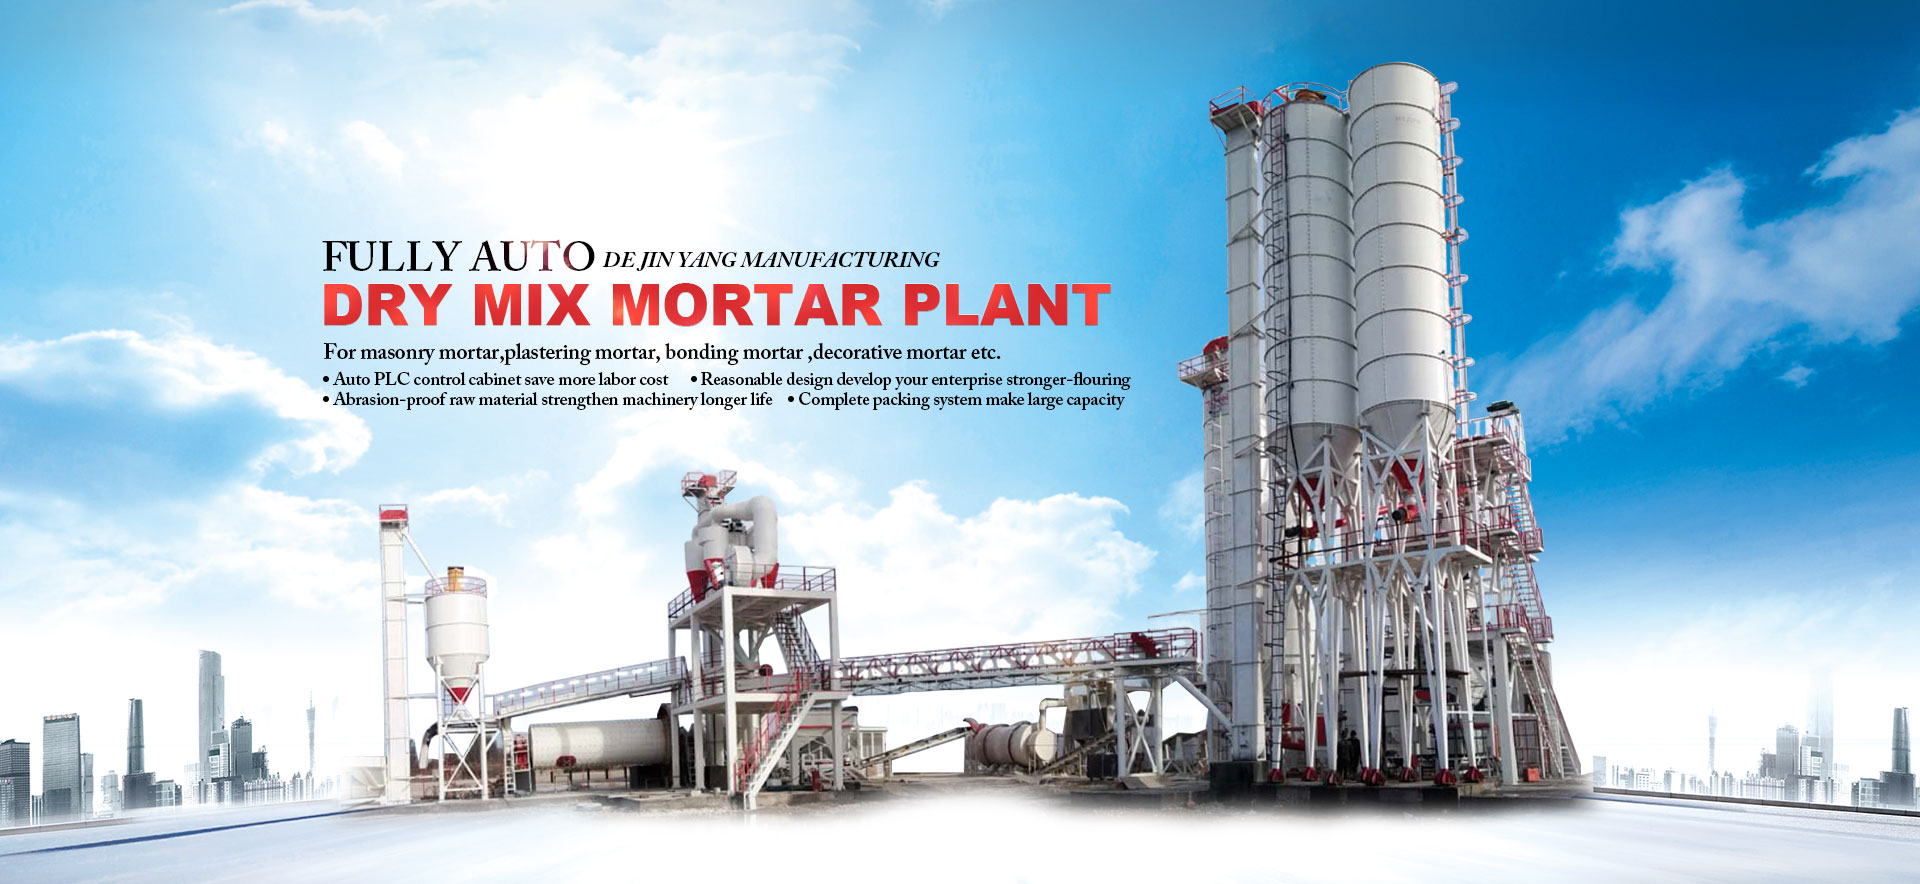 Fully Auto Dry Mix Mortar Plant for masonry mortar,plastering mortar, bonding mortar ,decorative mortar etc